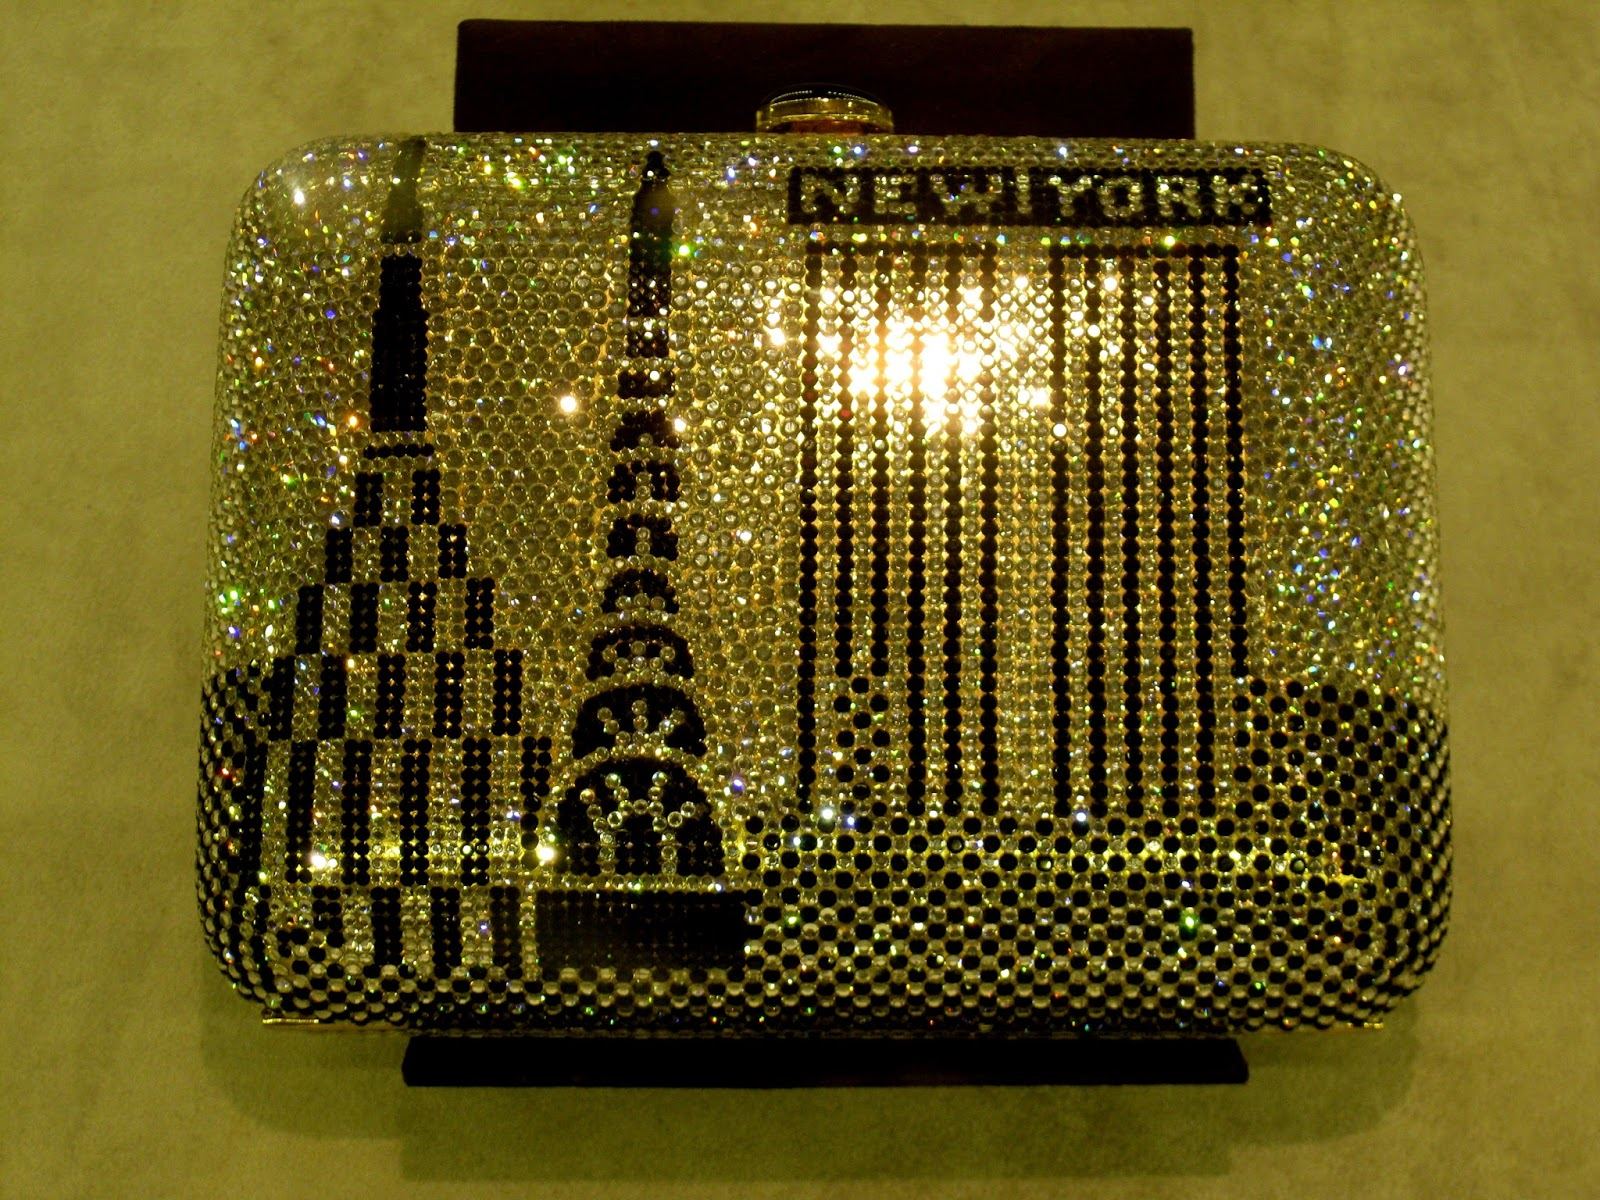 Joan Rivers' Private Collection Judith Lieber Crystal Clutch [photo/edit by sookietex]